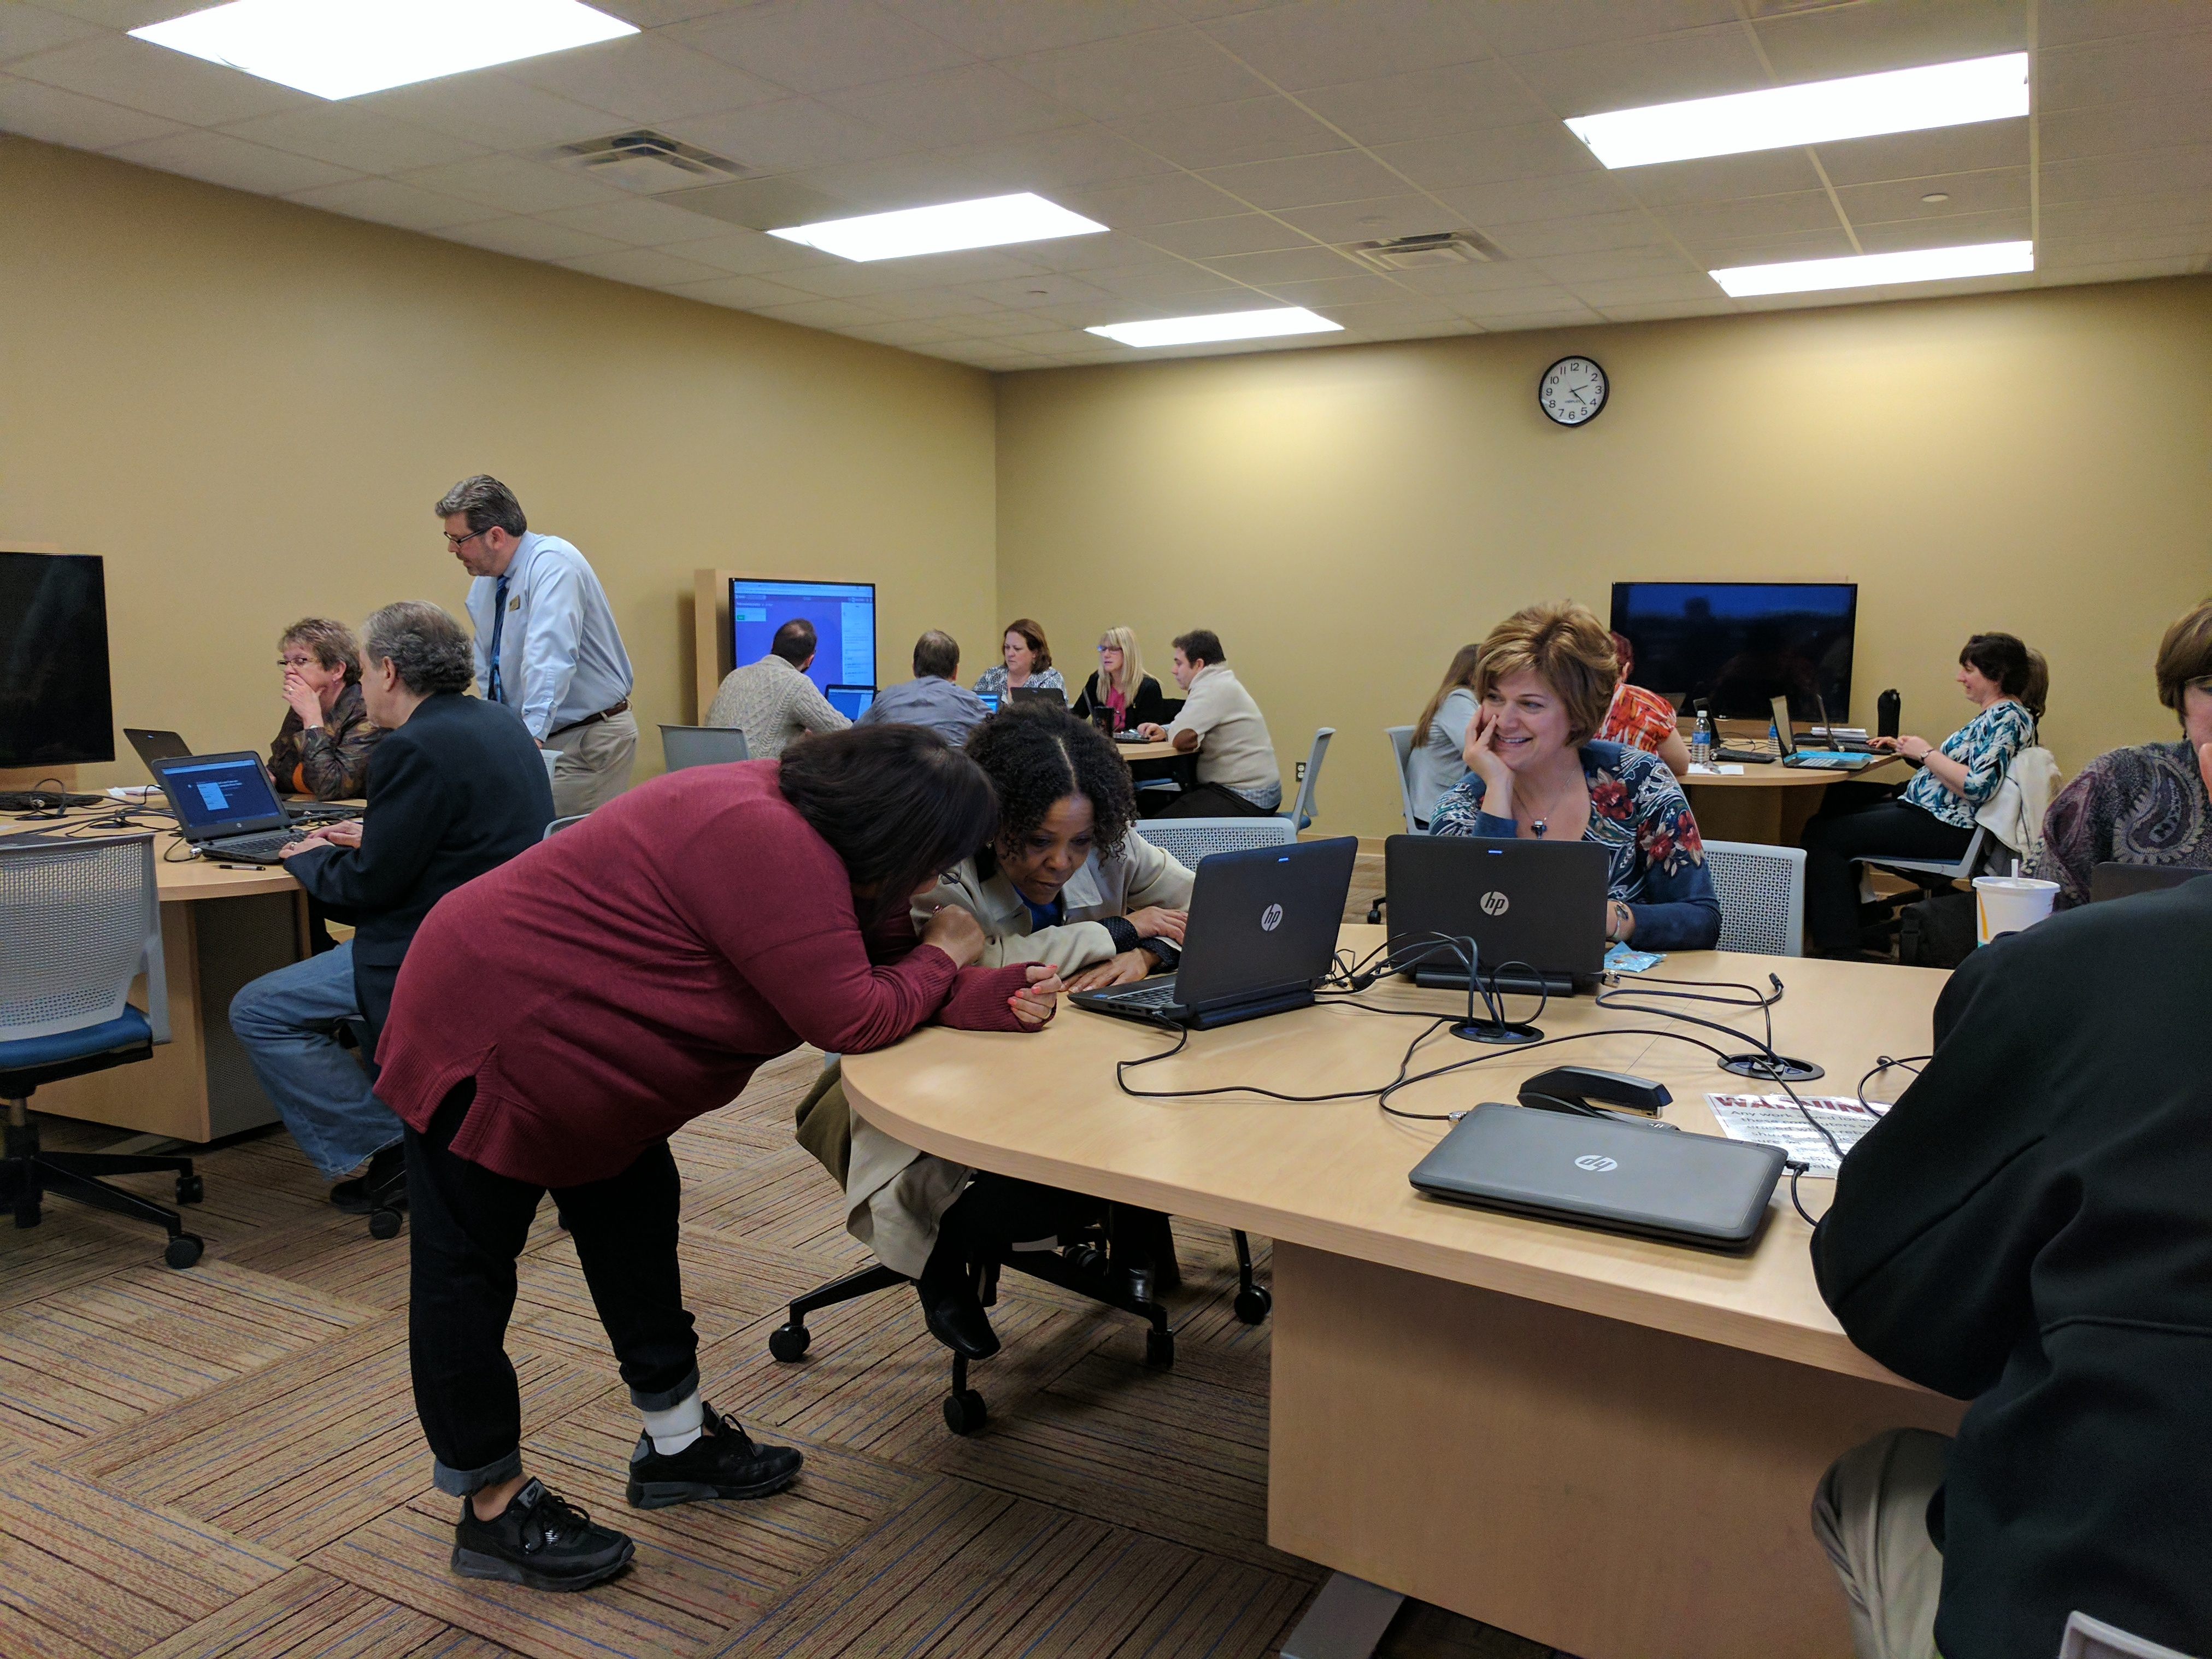 Classroom filled with employees working on laptops during a personal enrichment session